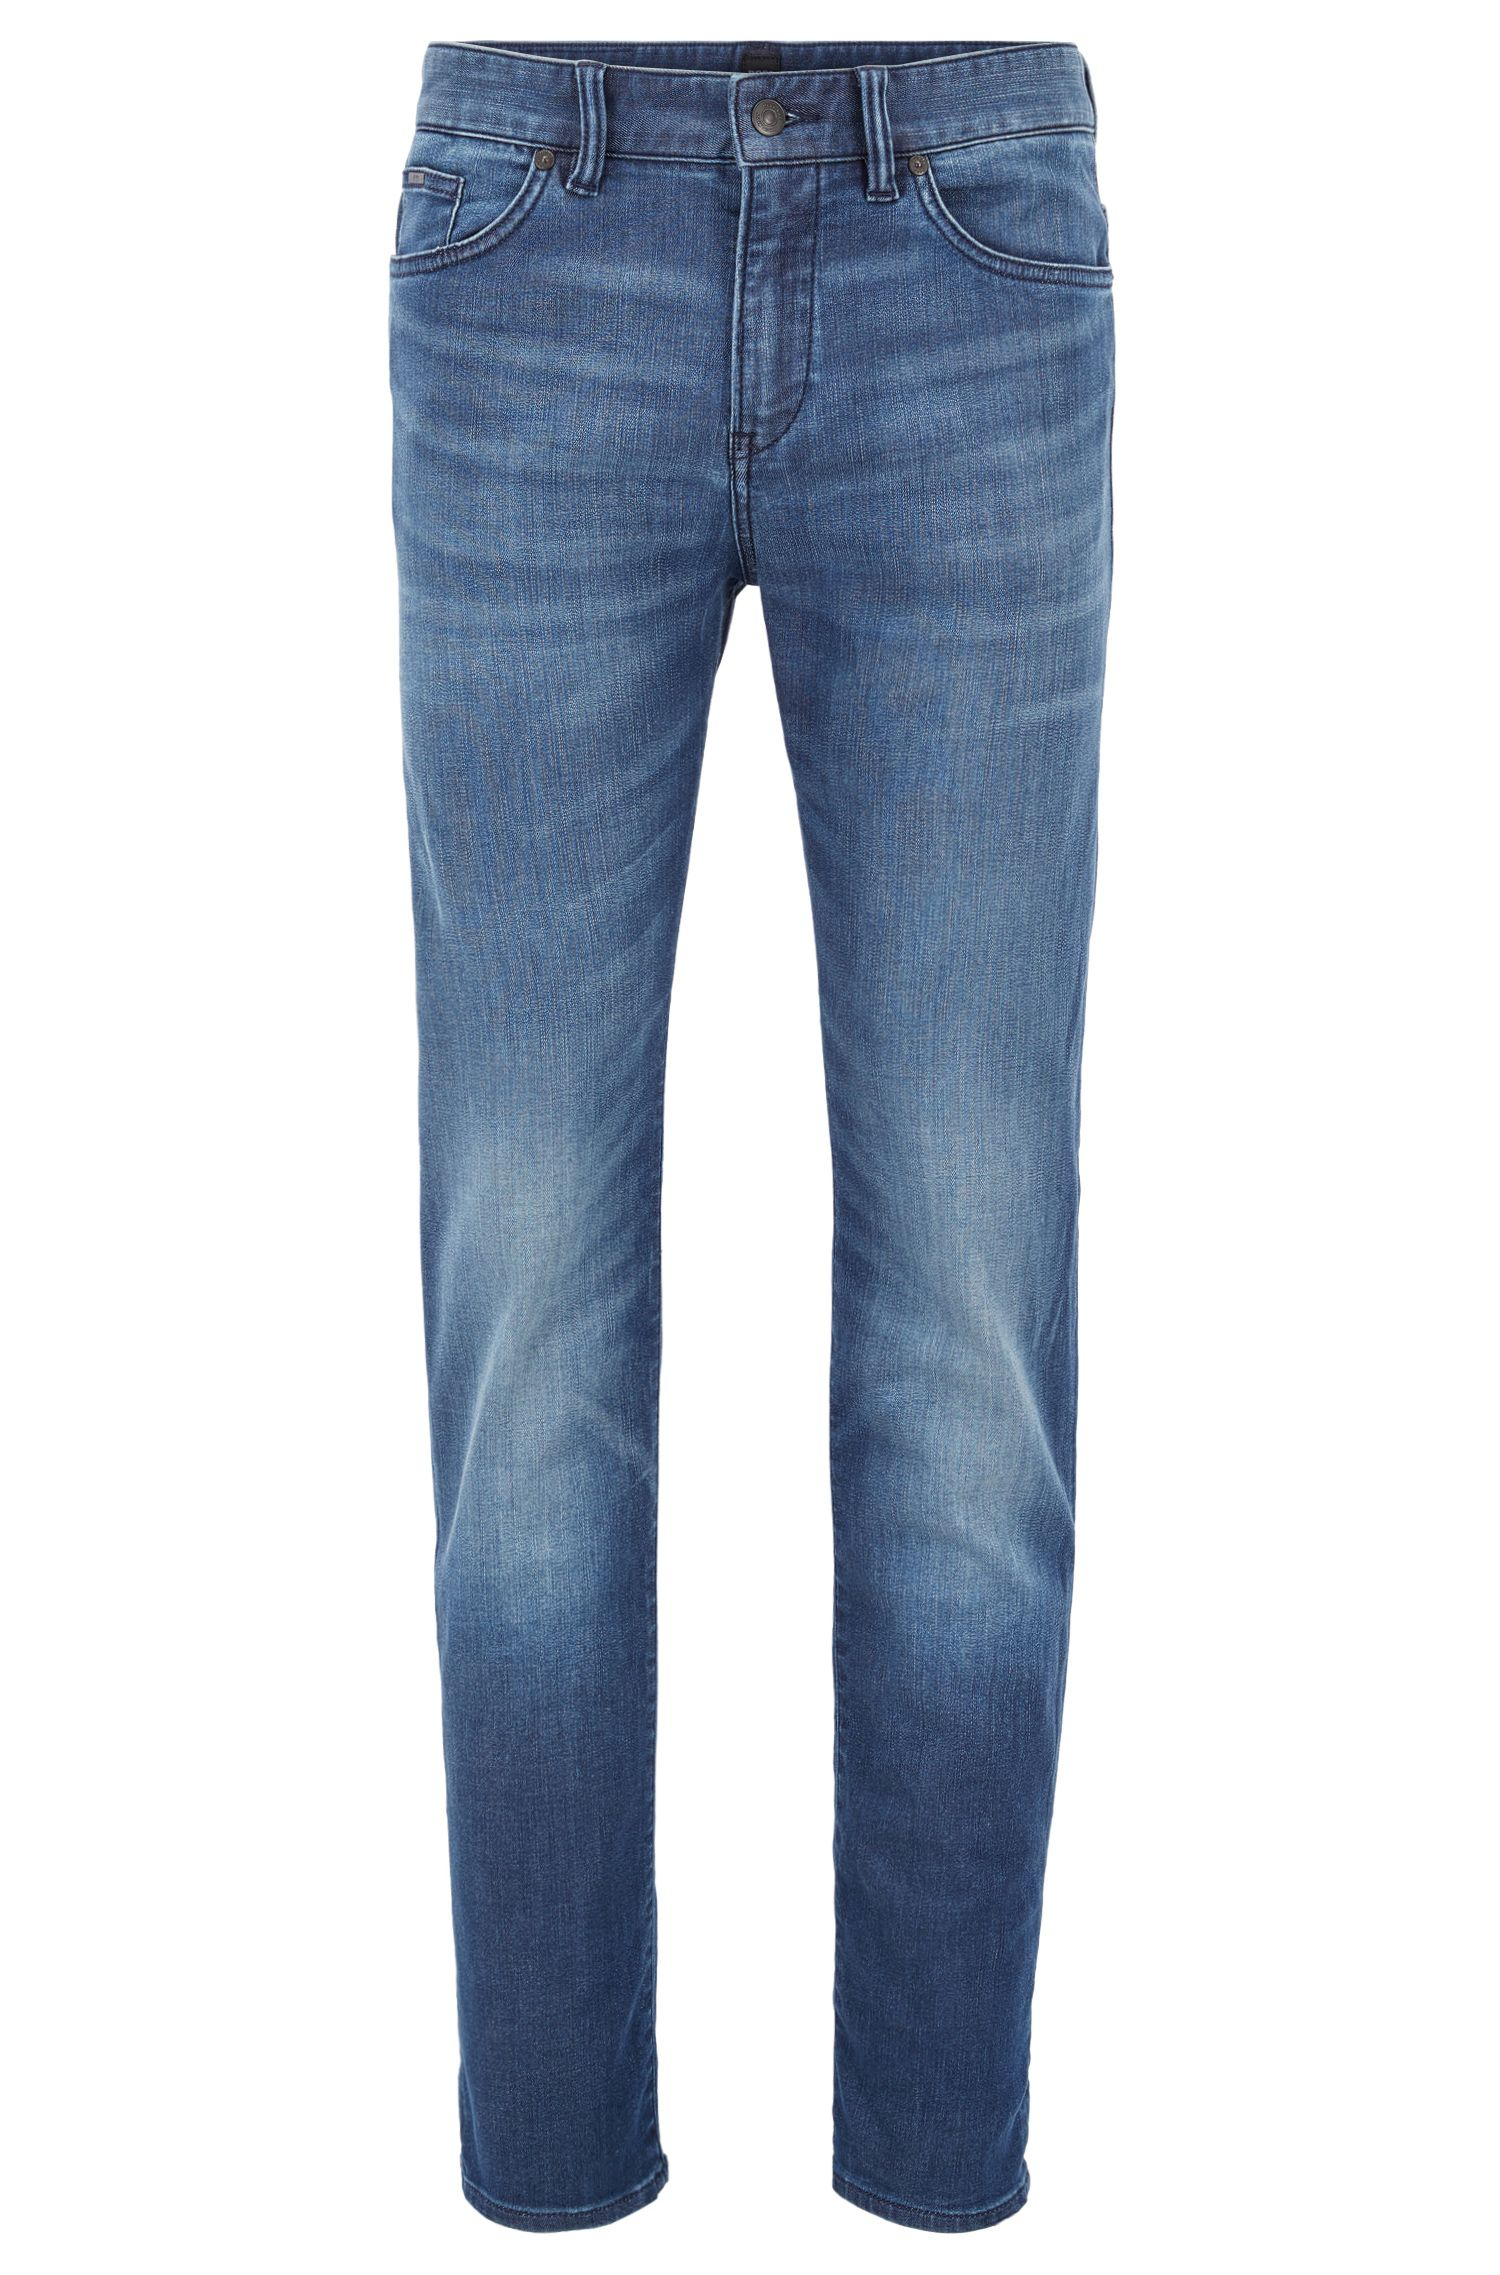 Jeans slim fit blu medio in denim elasticizzato